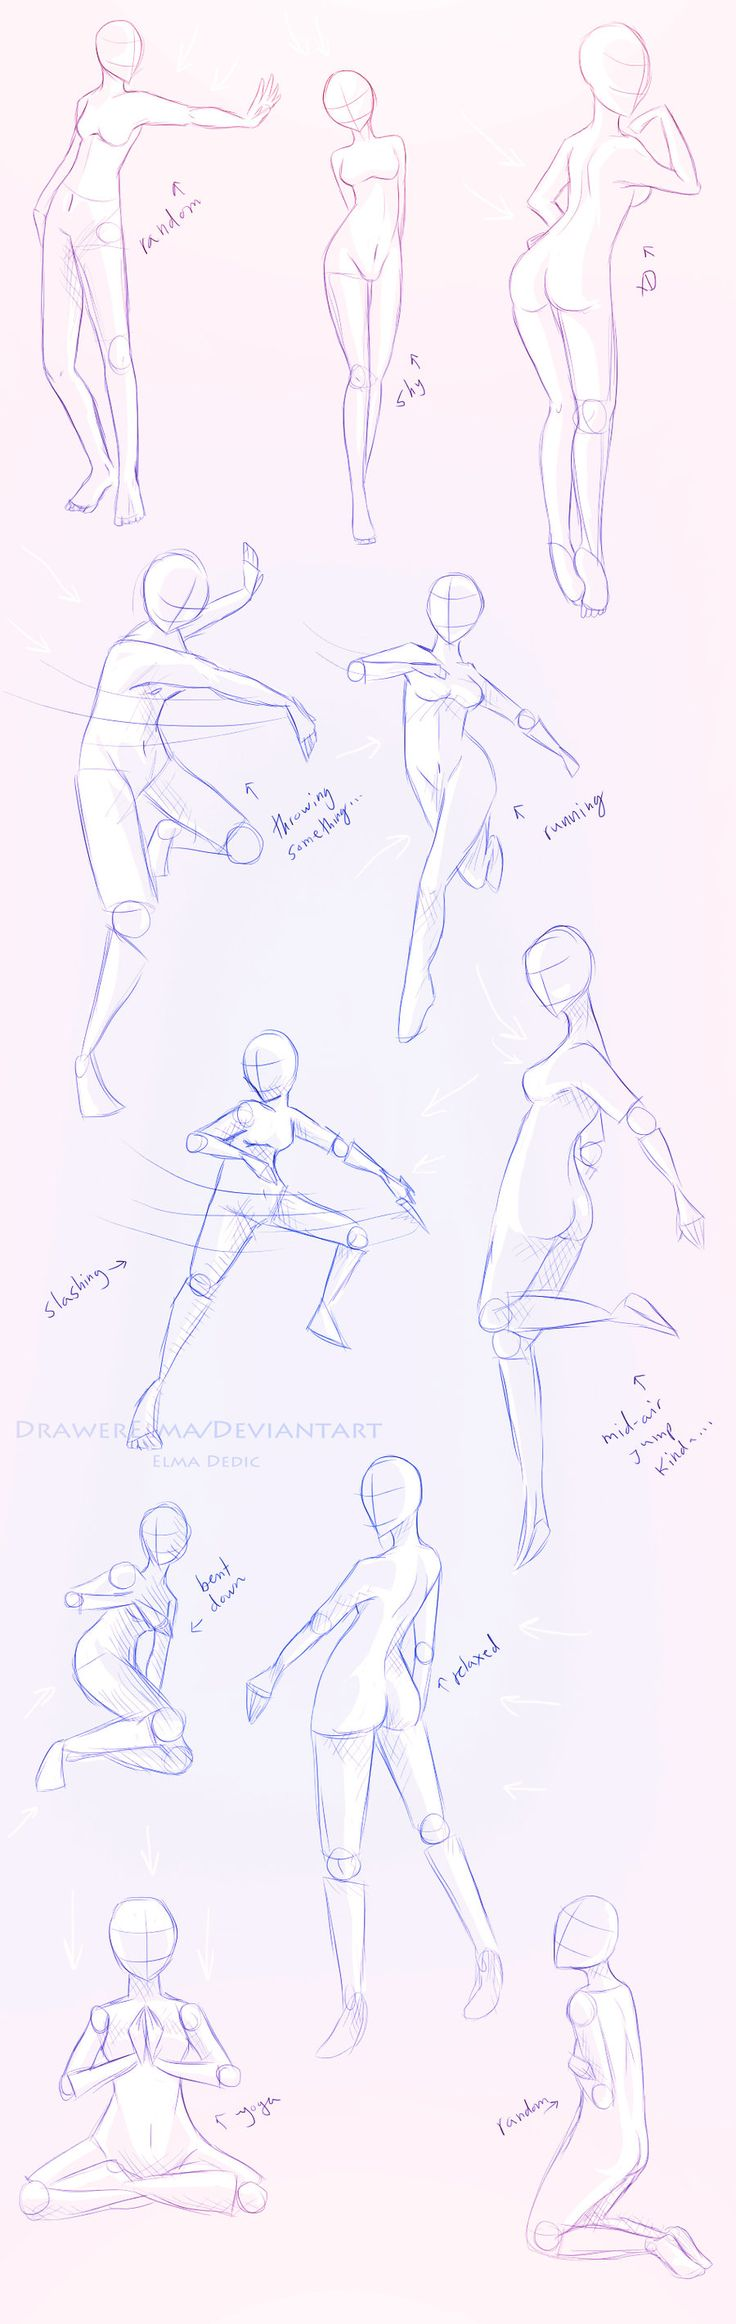 female_body_study_3_by_drawerelma-d5cyhdm.jpg (900×2842)